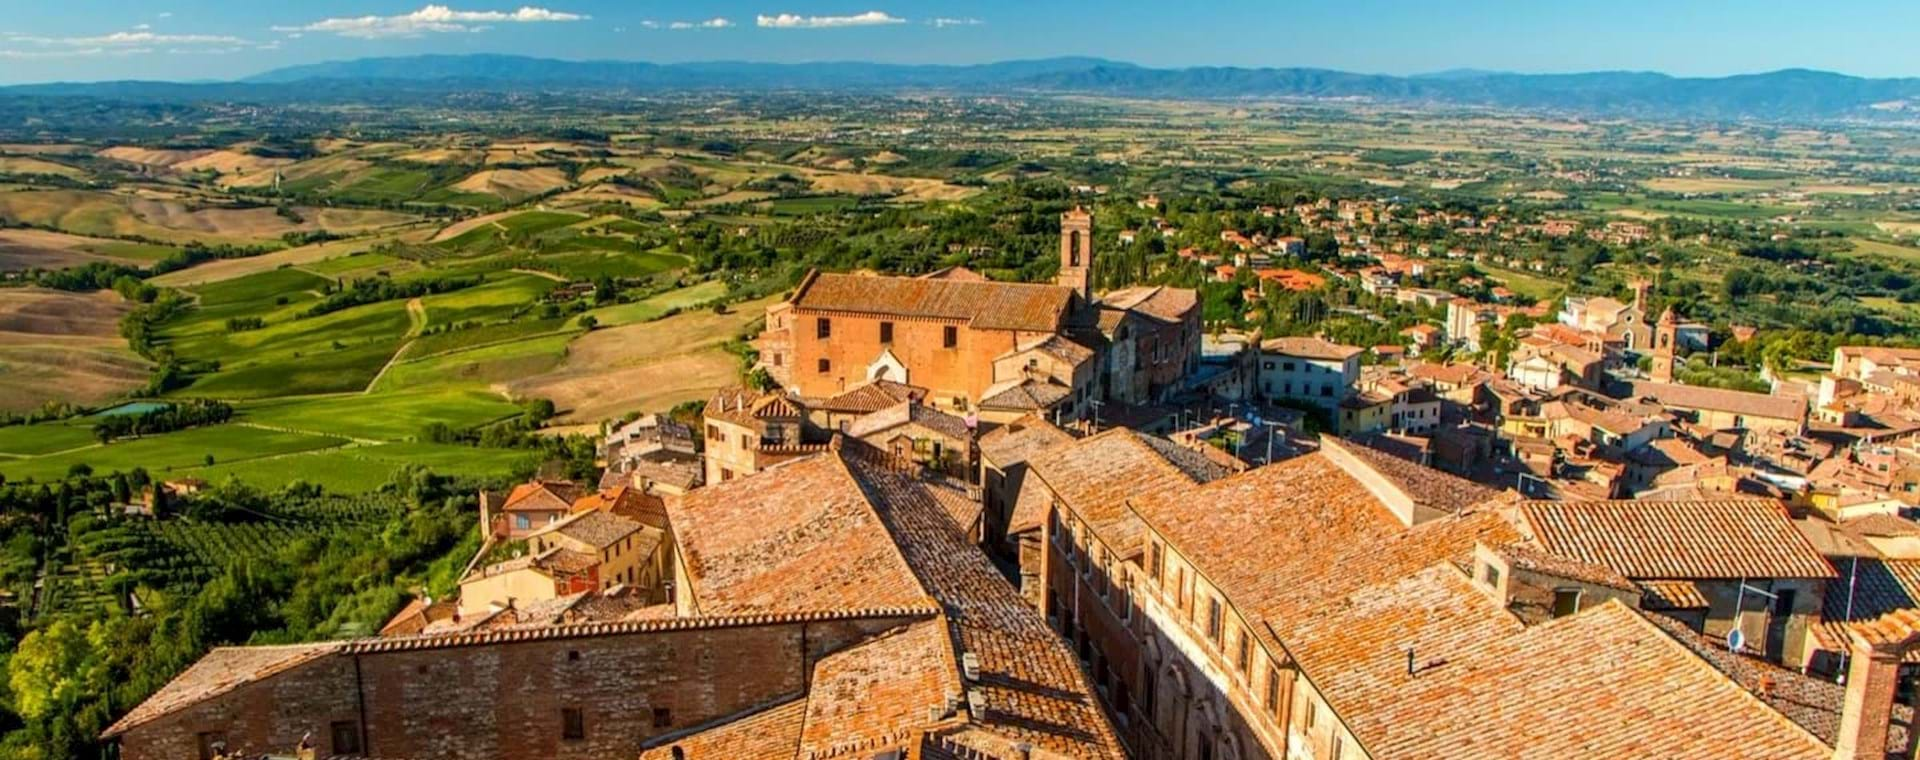 Guided Day Trip: Tuscany from Rome including Brunello Wine Tasting & Gourmet Lunch